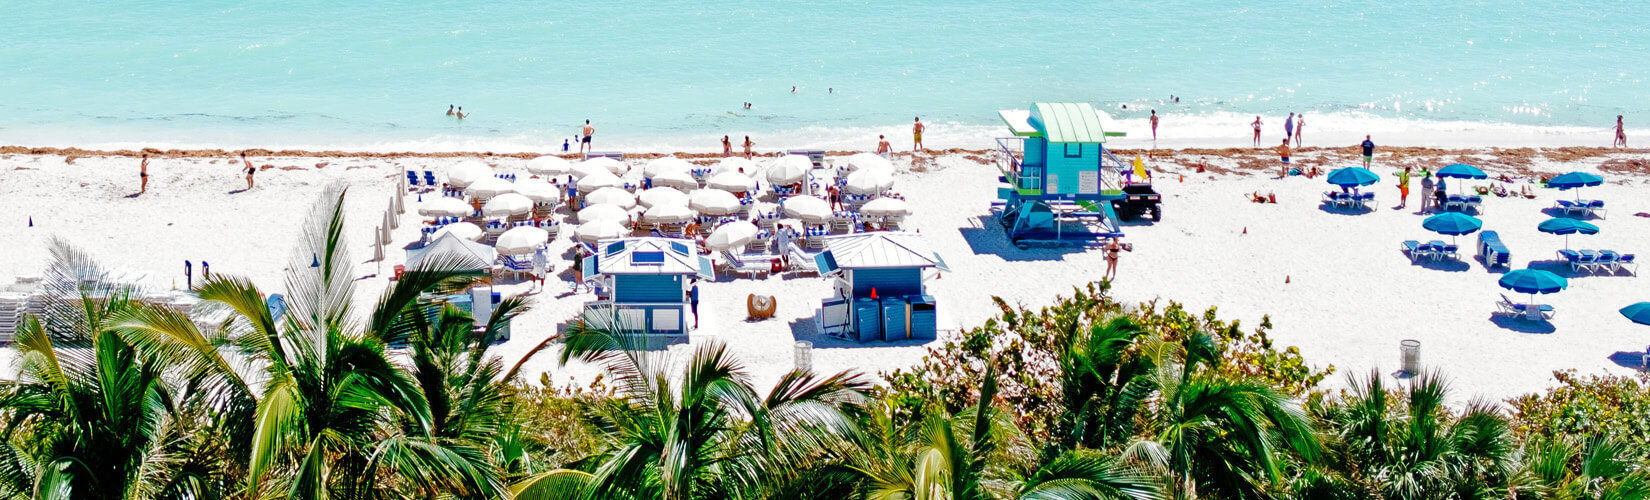 22 Hidden Gems in Miami You Don't Want to Miss :: I've Been Bit! Travel Blog